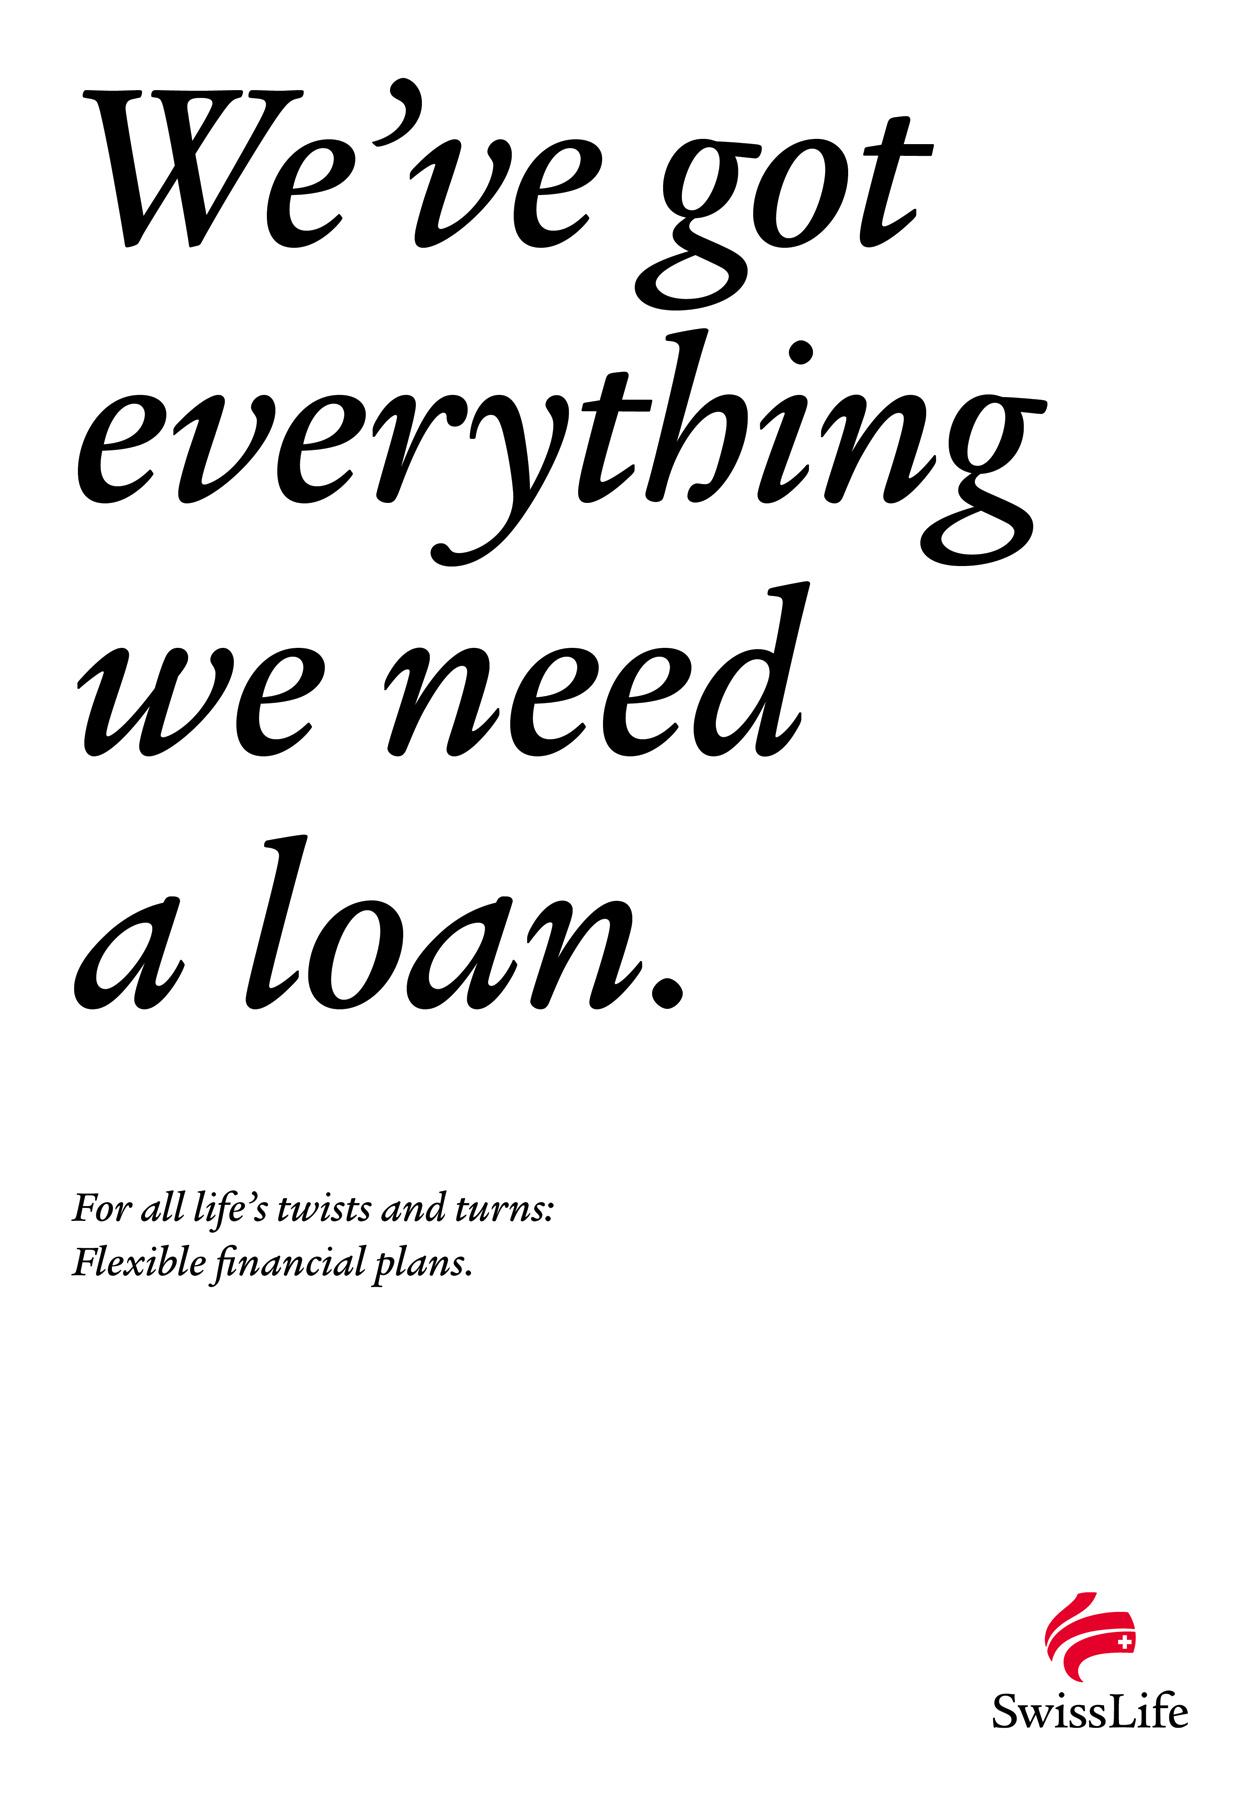 Swiss Life Print Ad -  Life's Turns In A Sentence, 7